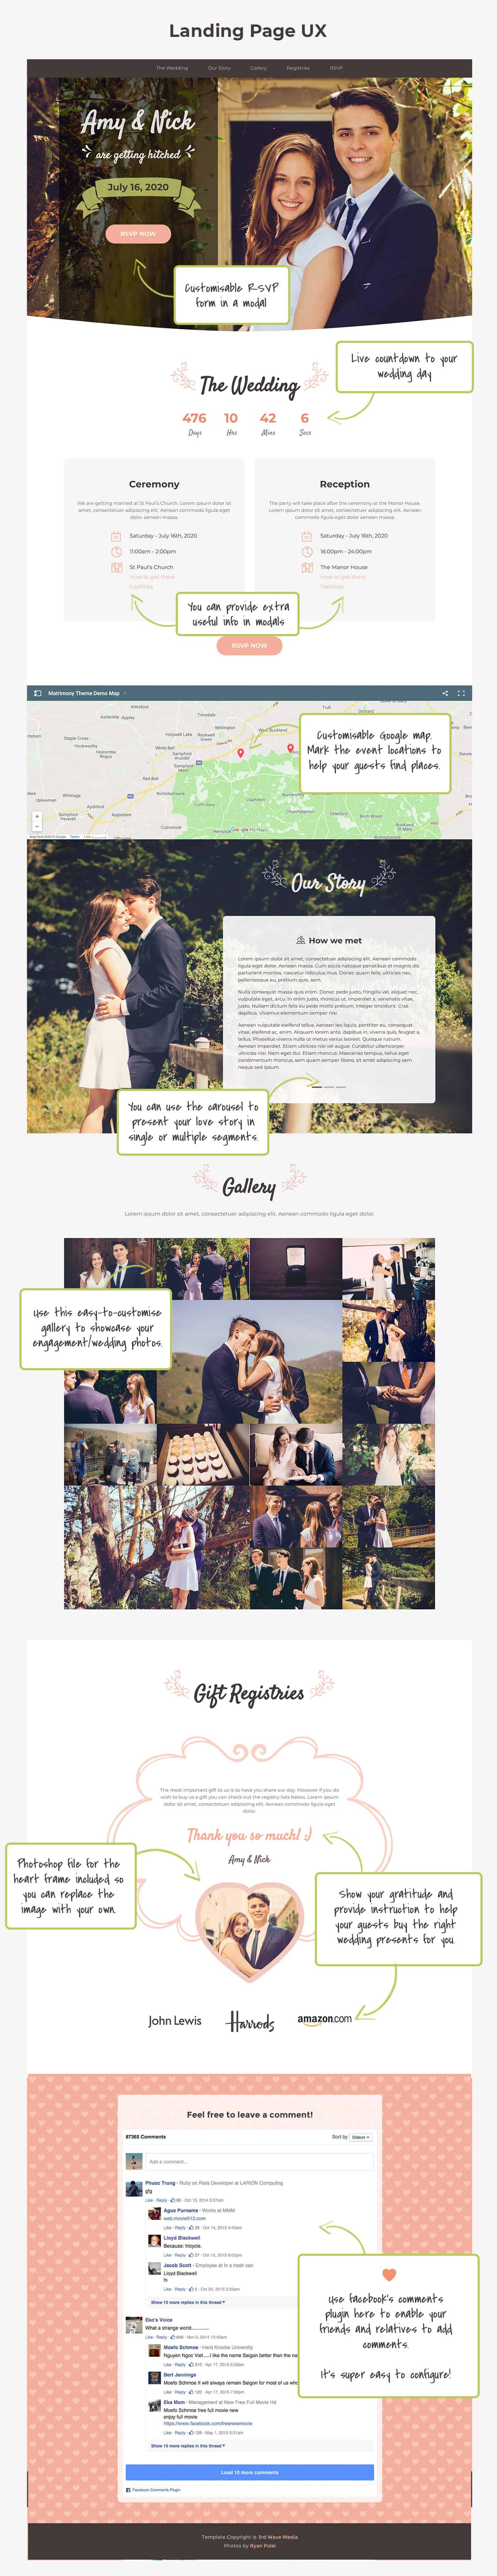 matrimony-promo-with-ux-notes